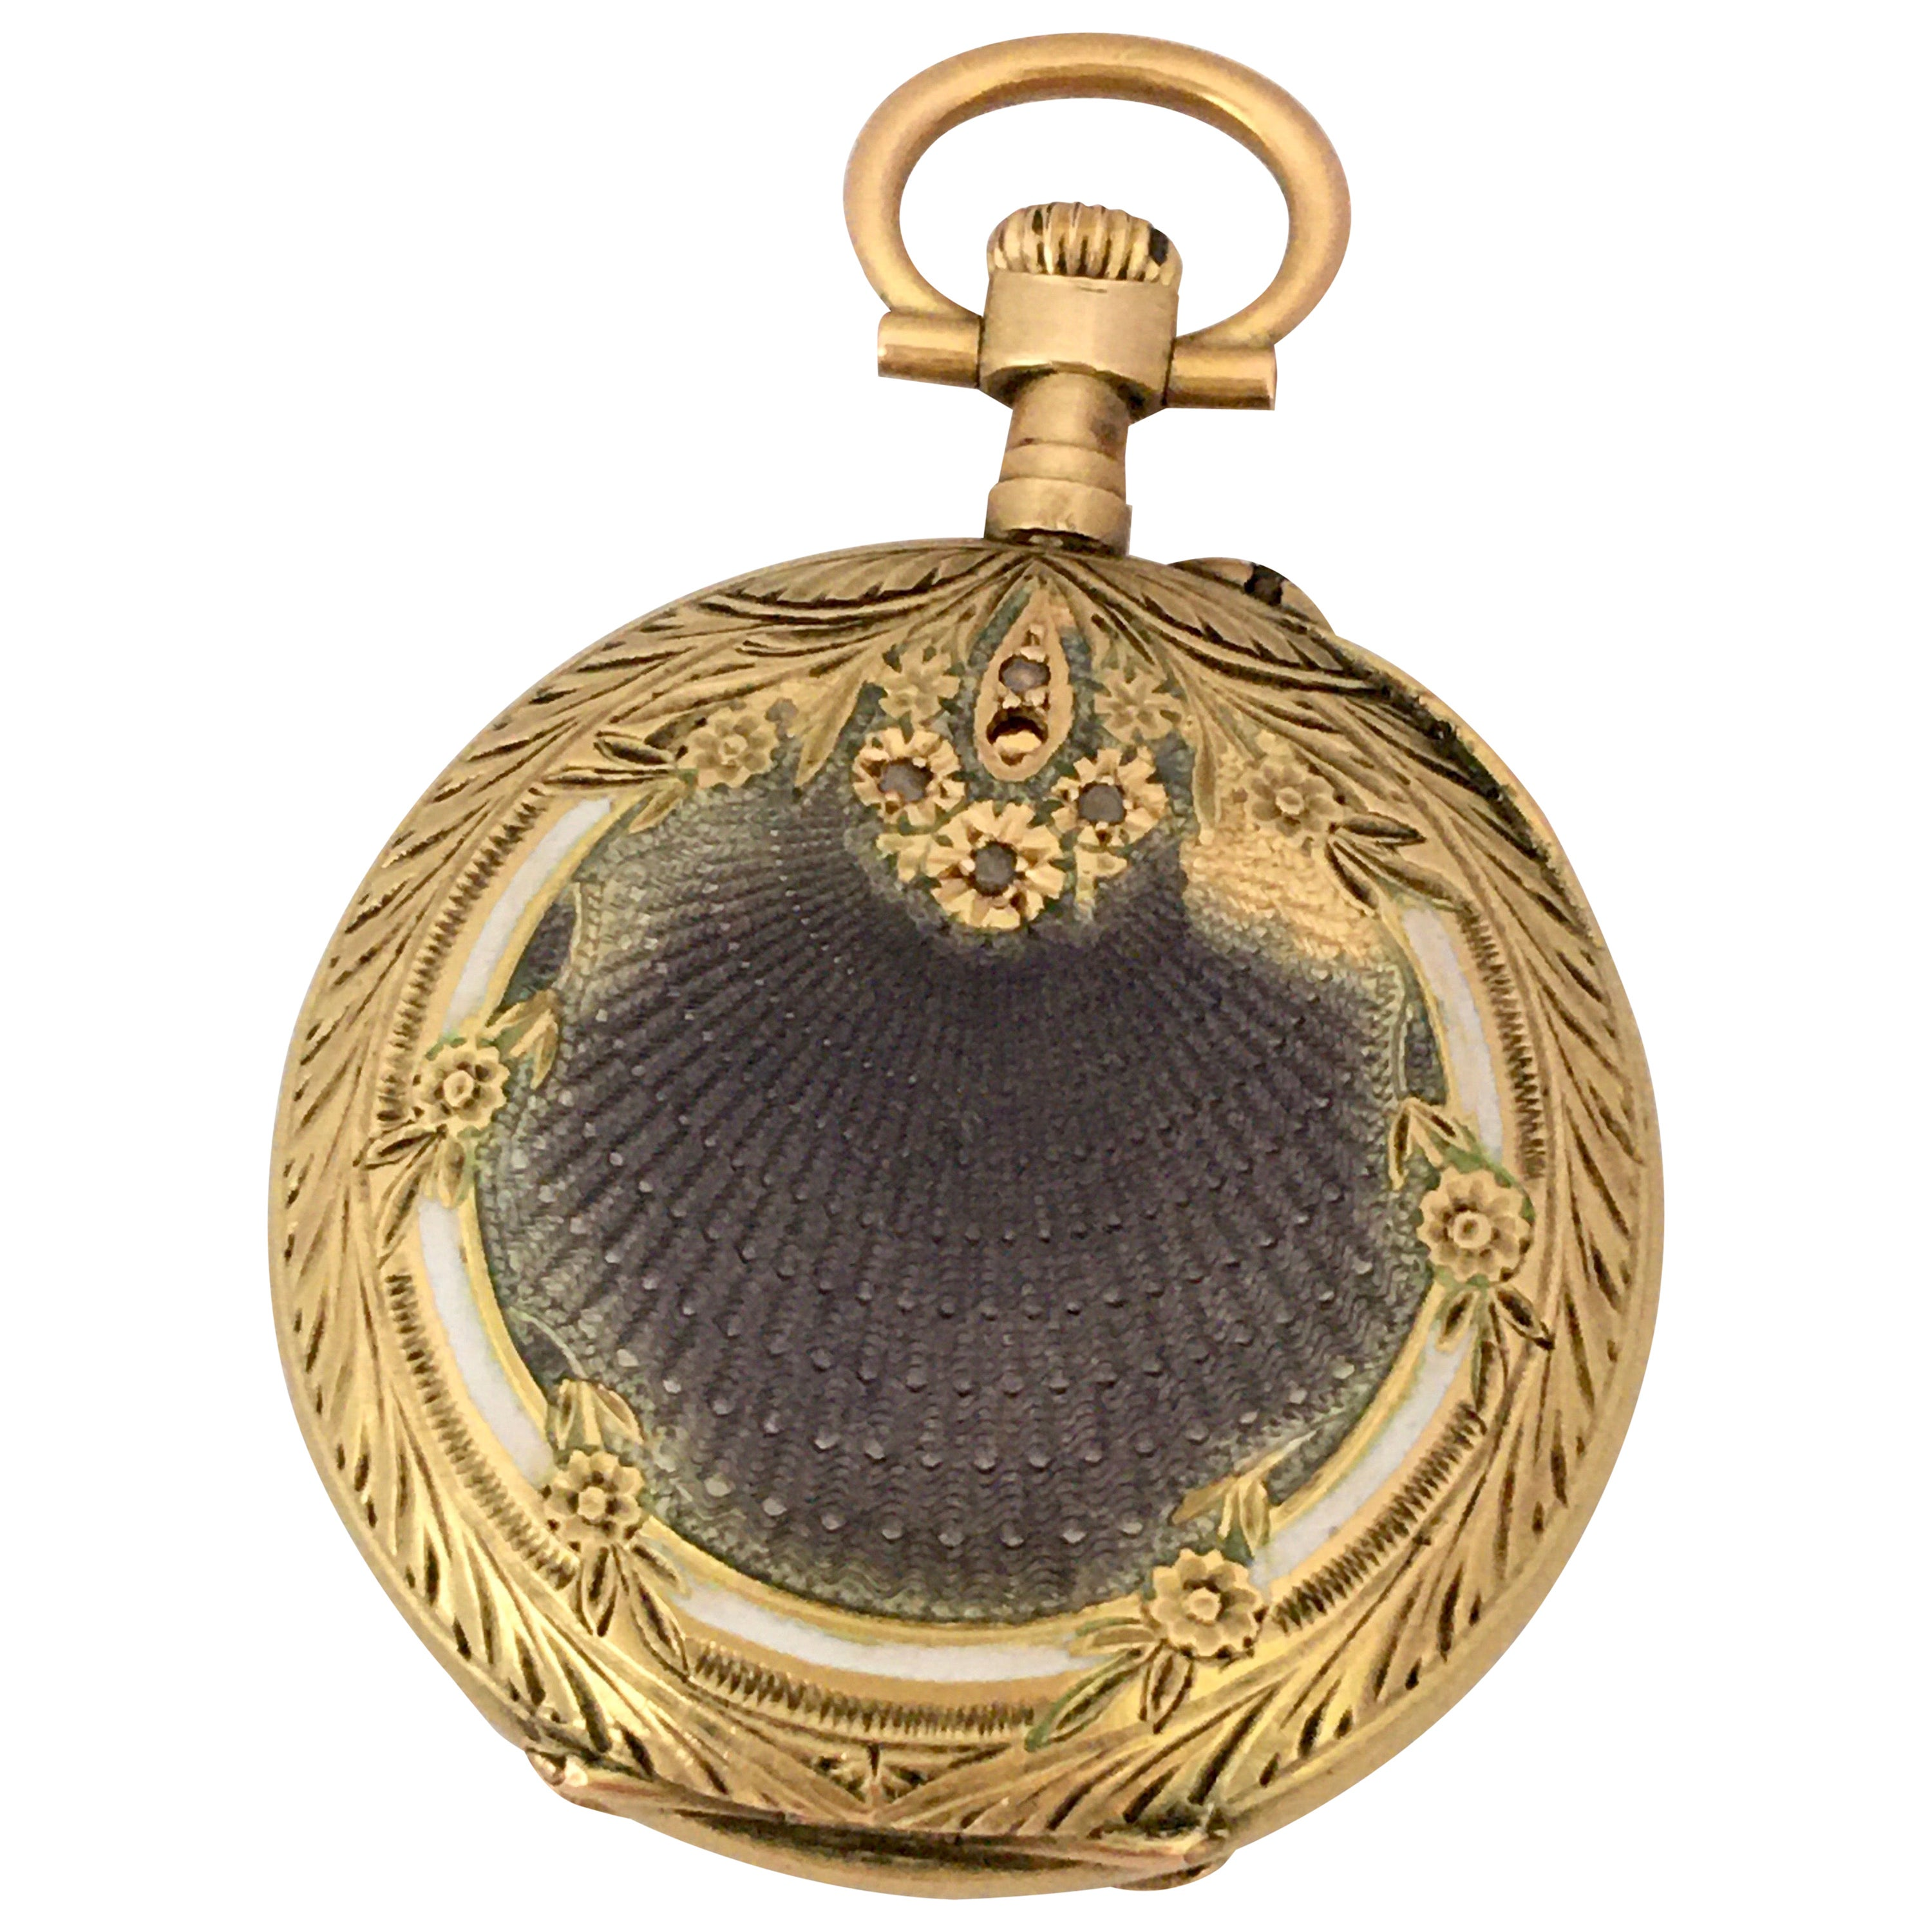 18 Karat Gold and Diamonds with Touched of Purple Enamel Fob / Pocket Watch